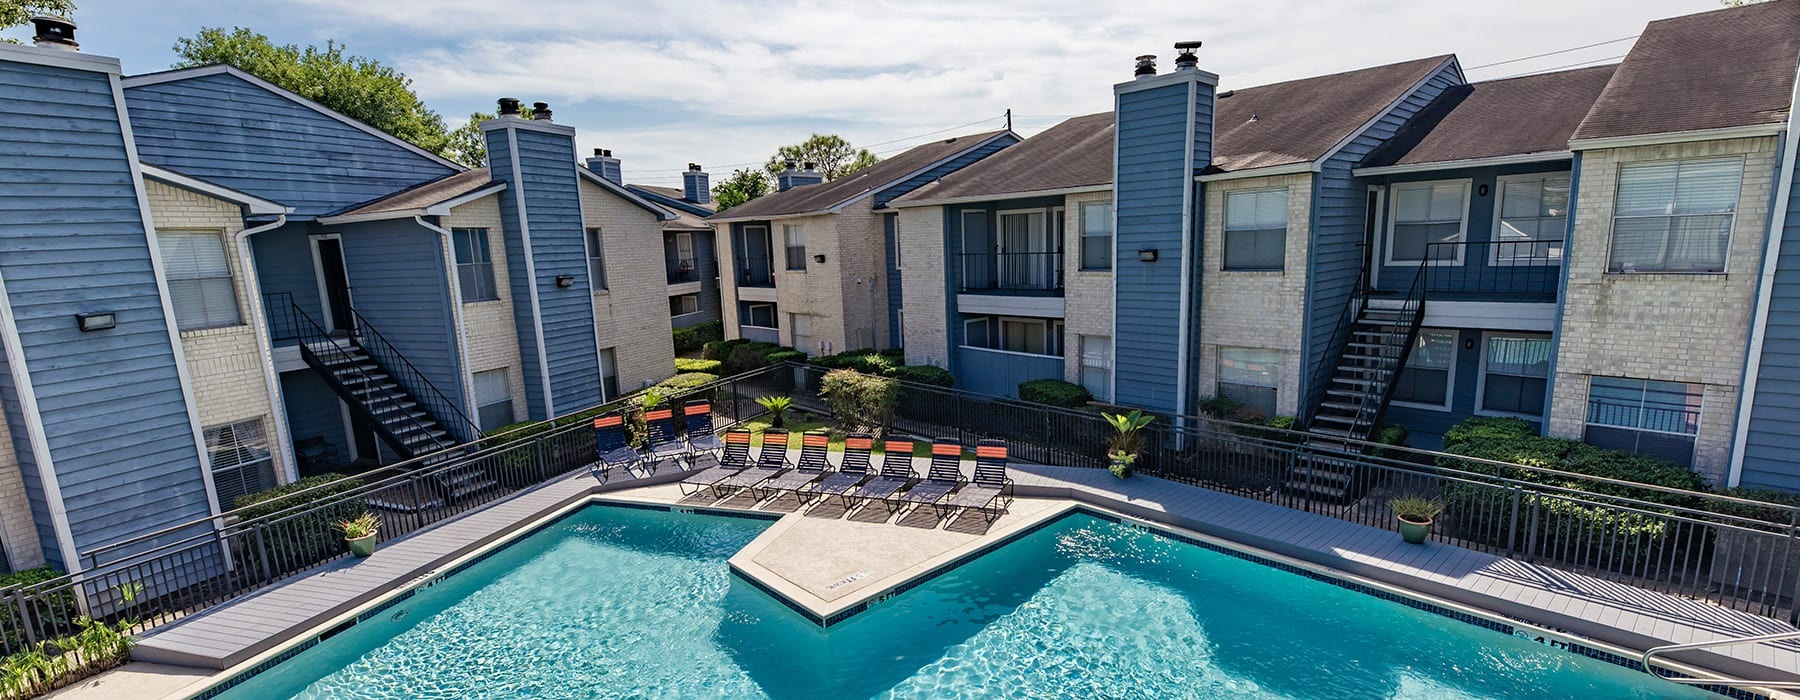 spacious pool with ample seating and nearby landscaping